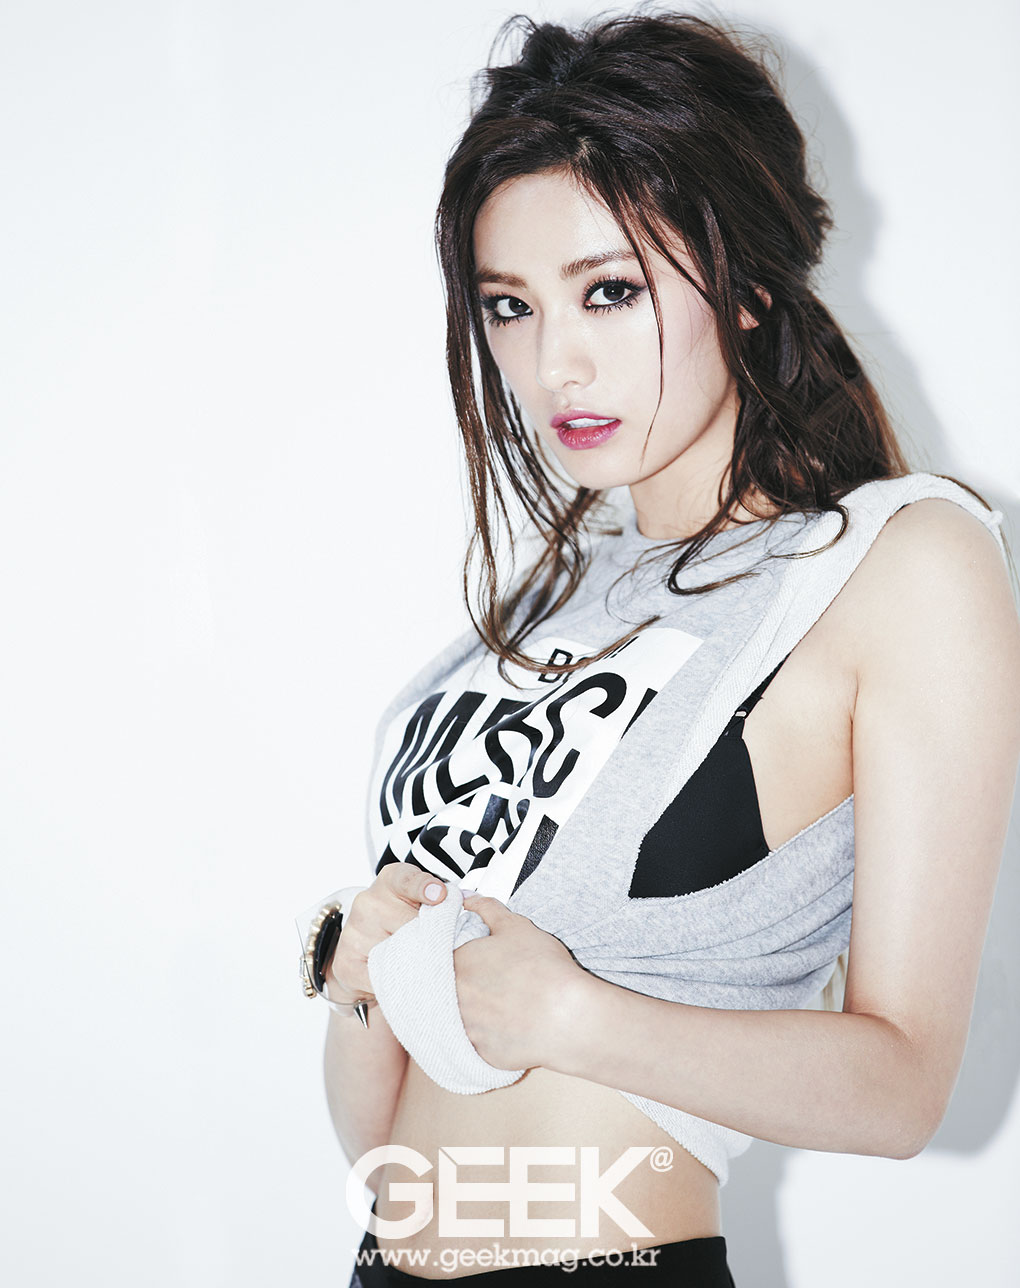 After School Nana Geek Magazine HD